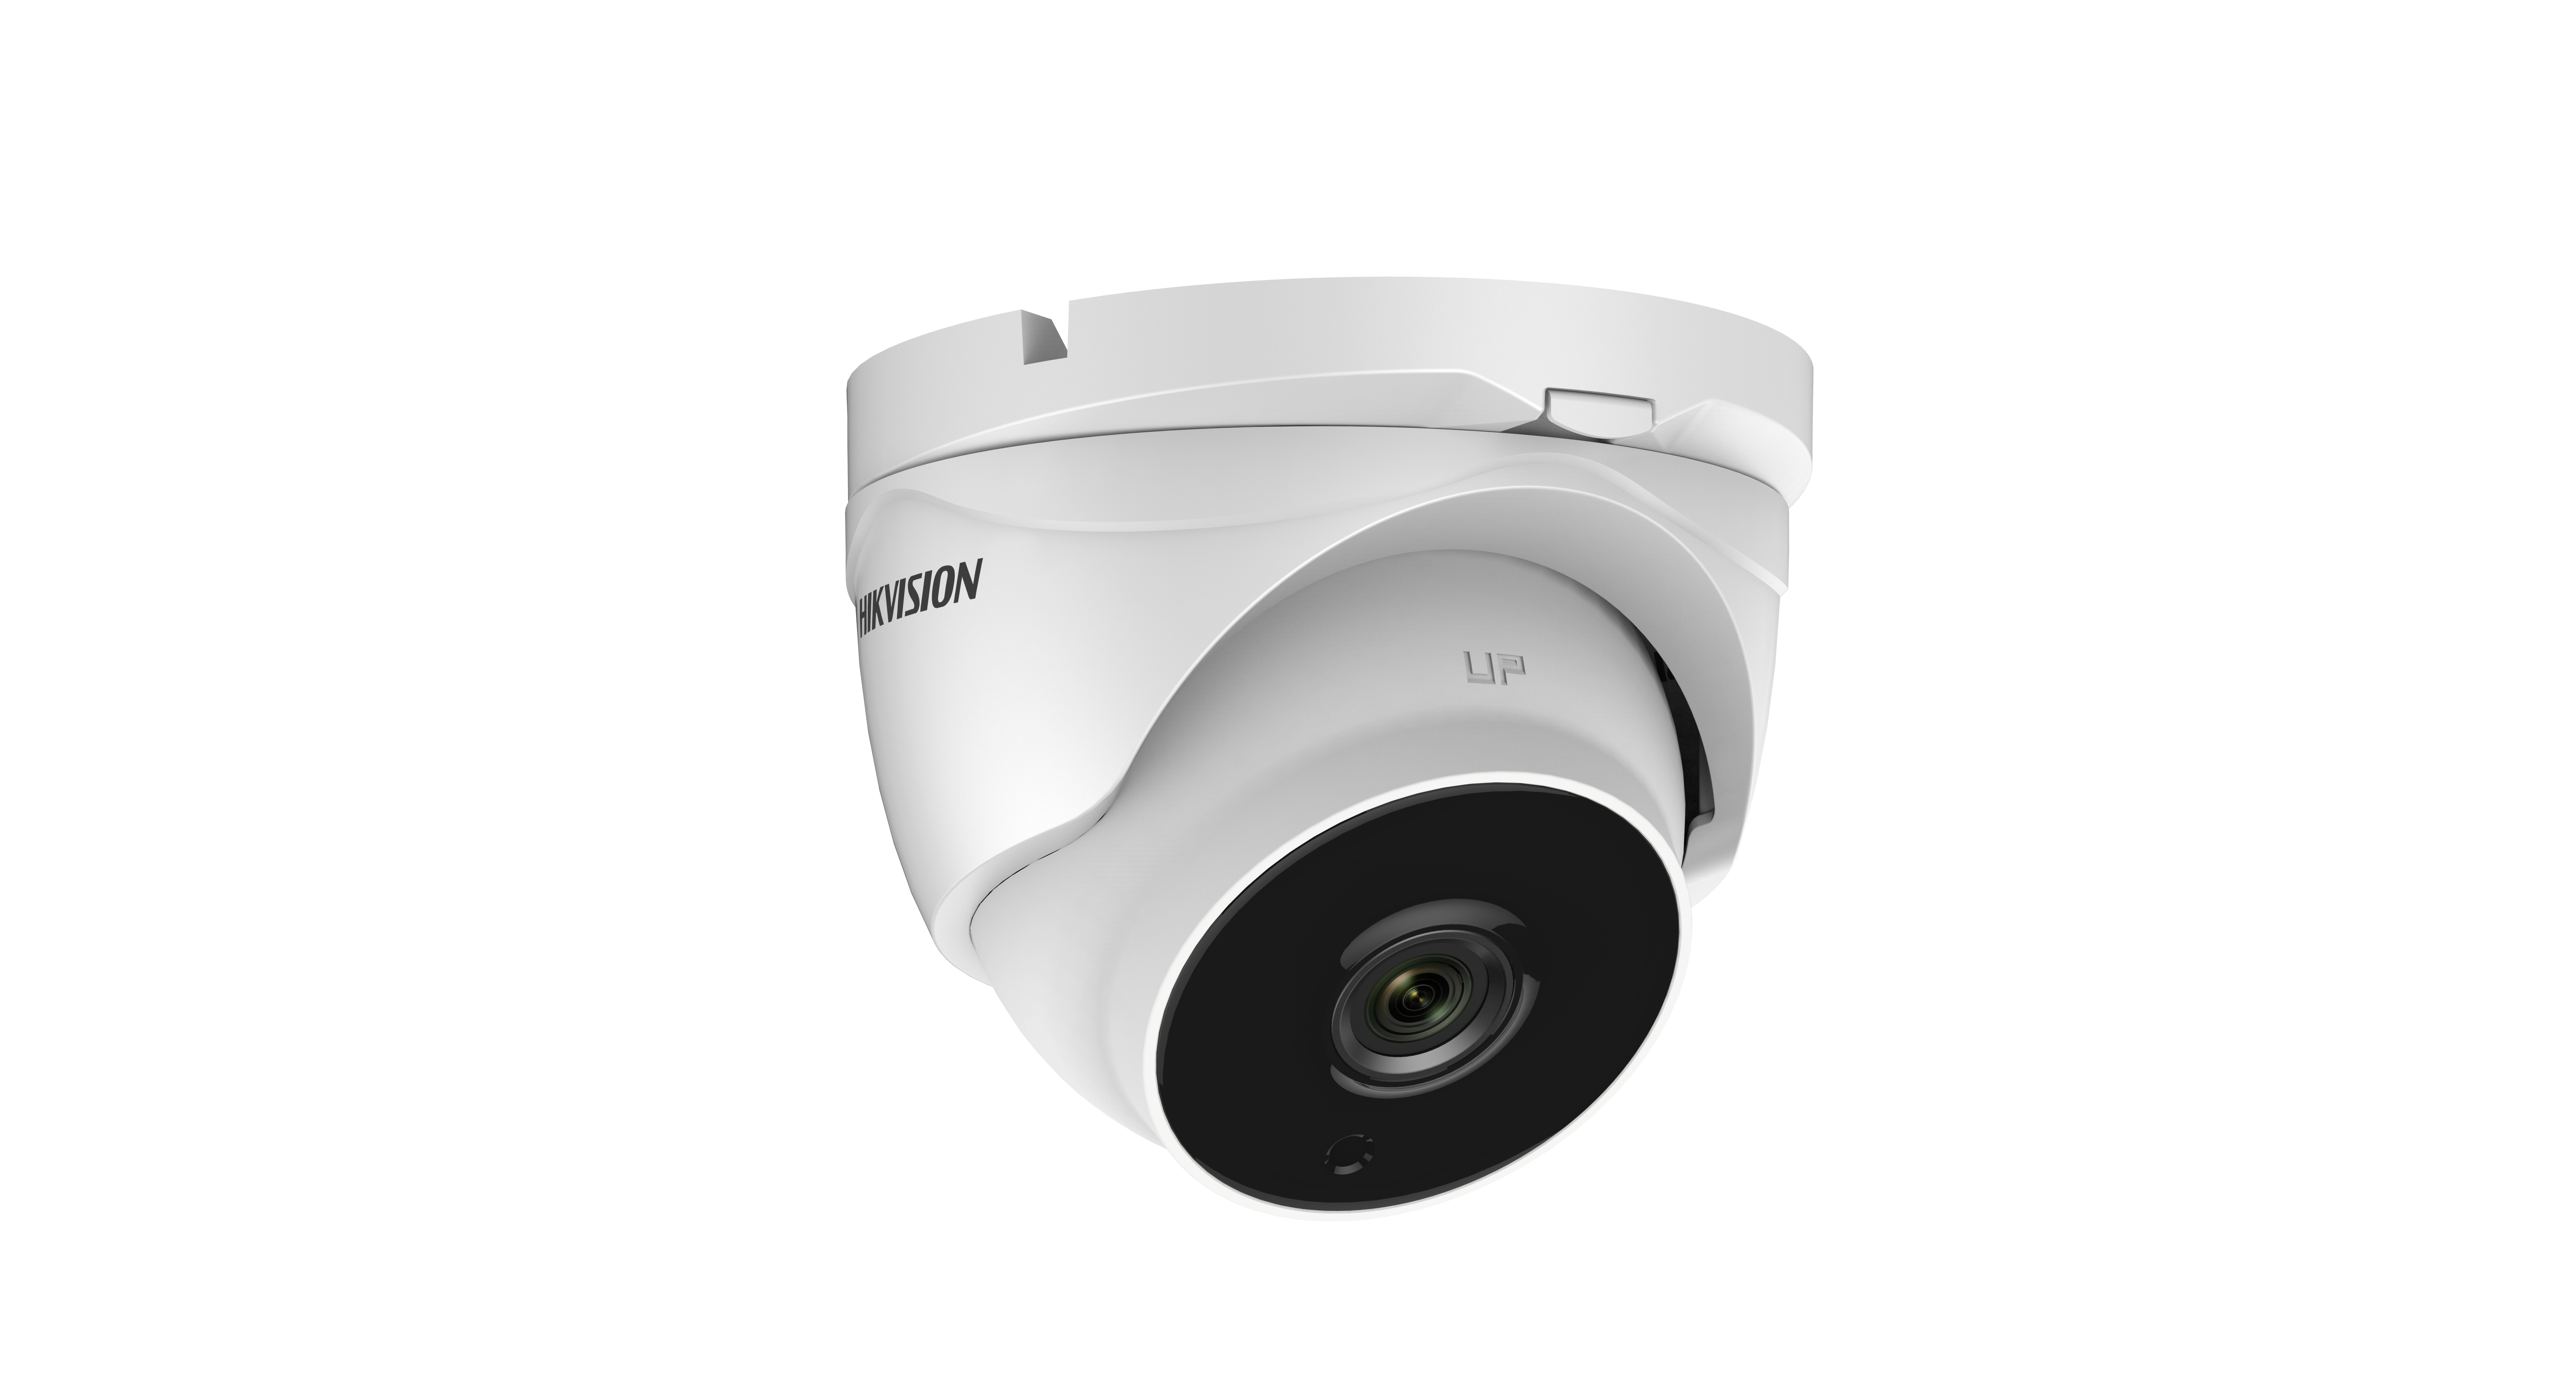 Hikvision DS-2CE56F7T-IT3Z 2.8-12mm - 3MP dan/noć TVI kamera u IP66 dome kućištu, EXIR tehnologija